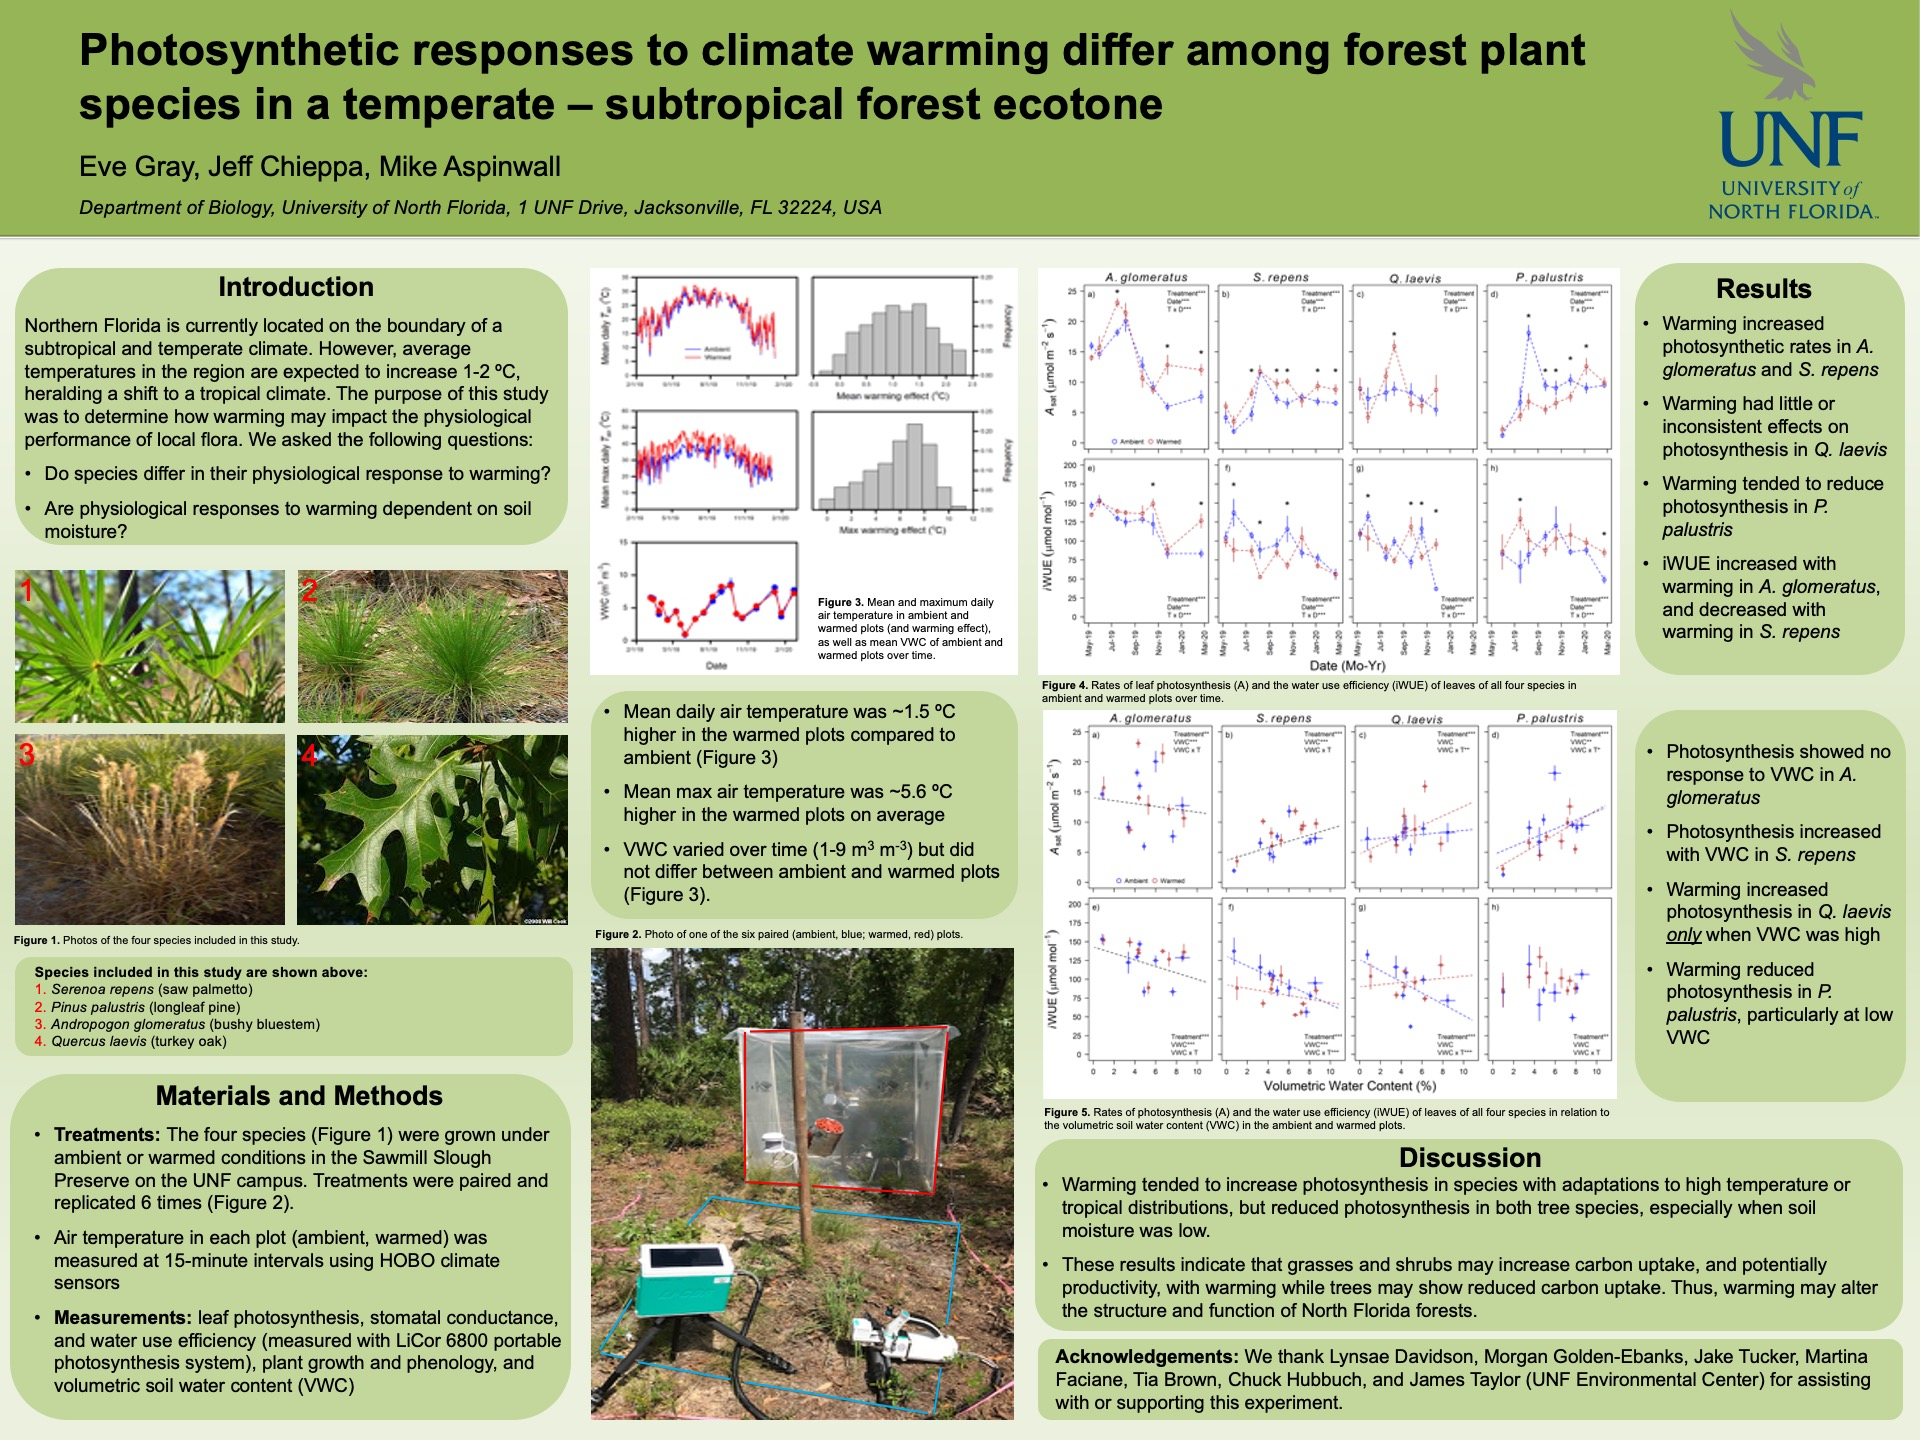 Photosynthetic responses to climate warming differ among forest plant species in a temperate – subtropical forest ecotone poster